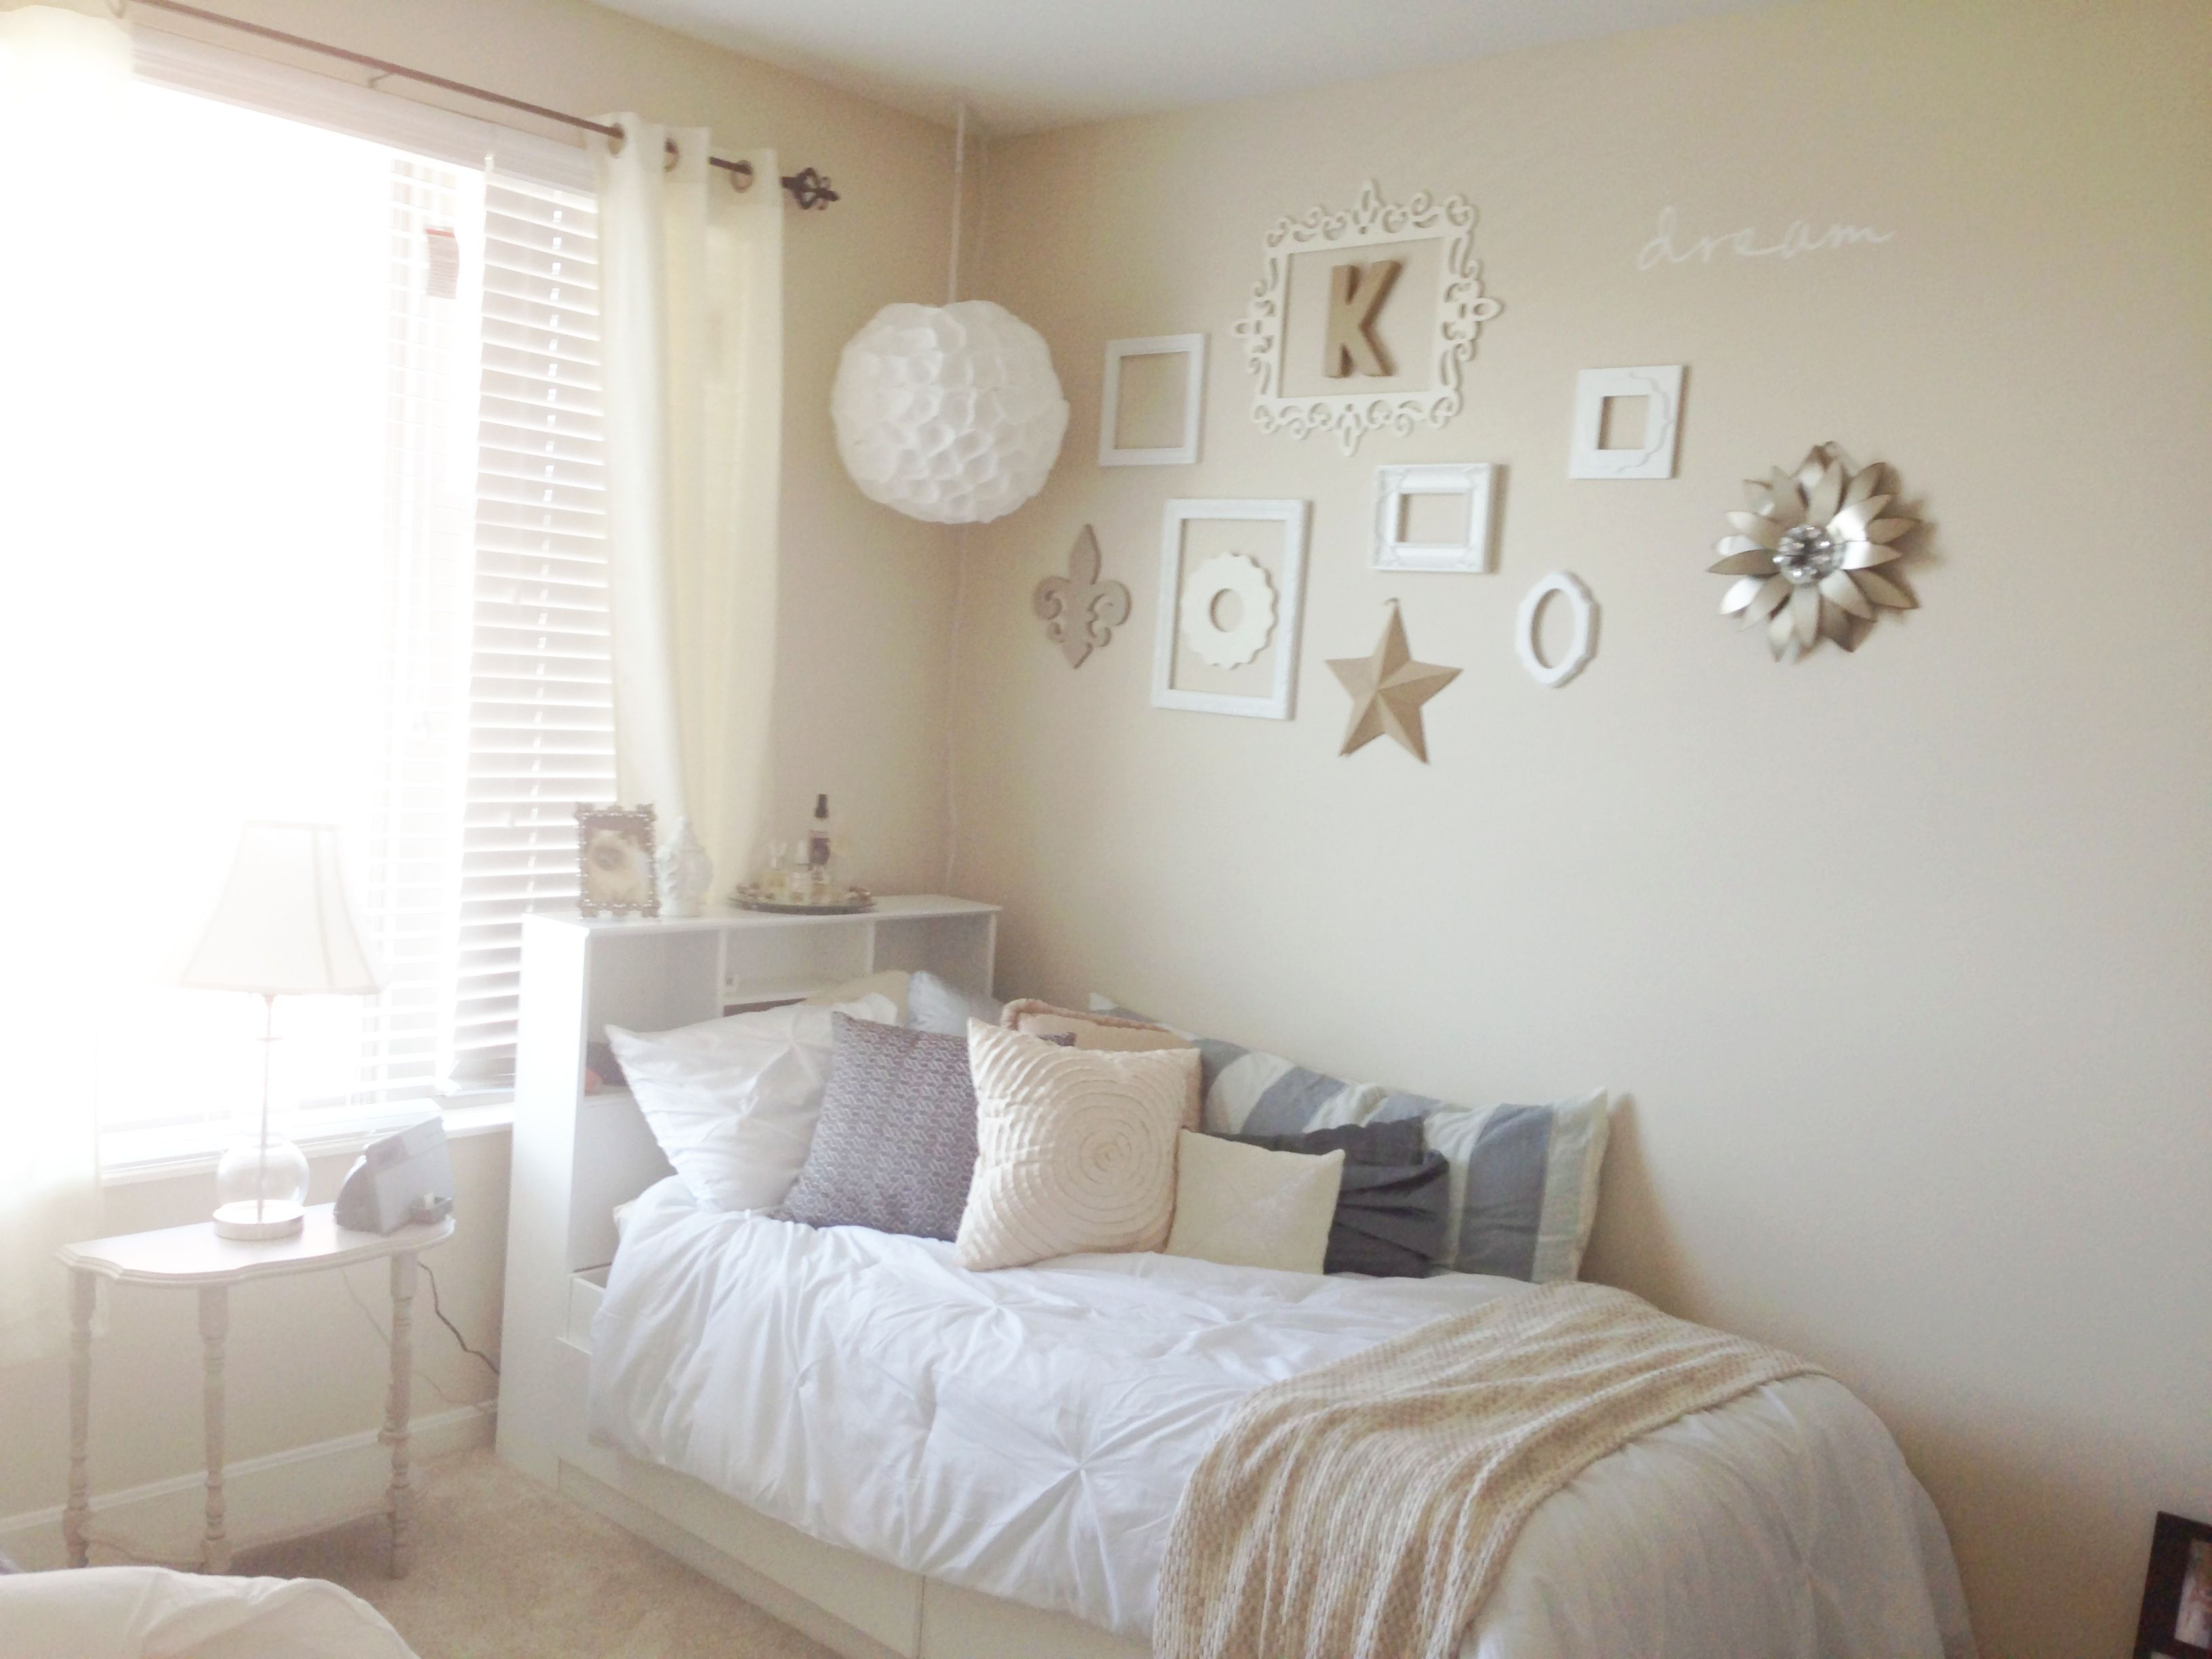 Chic college apartment bedroom - even though it seems ...